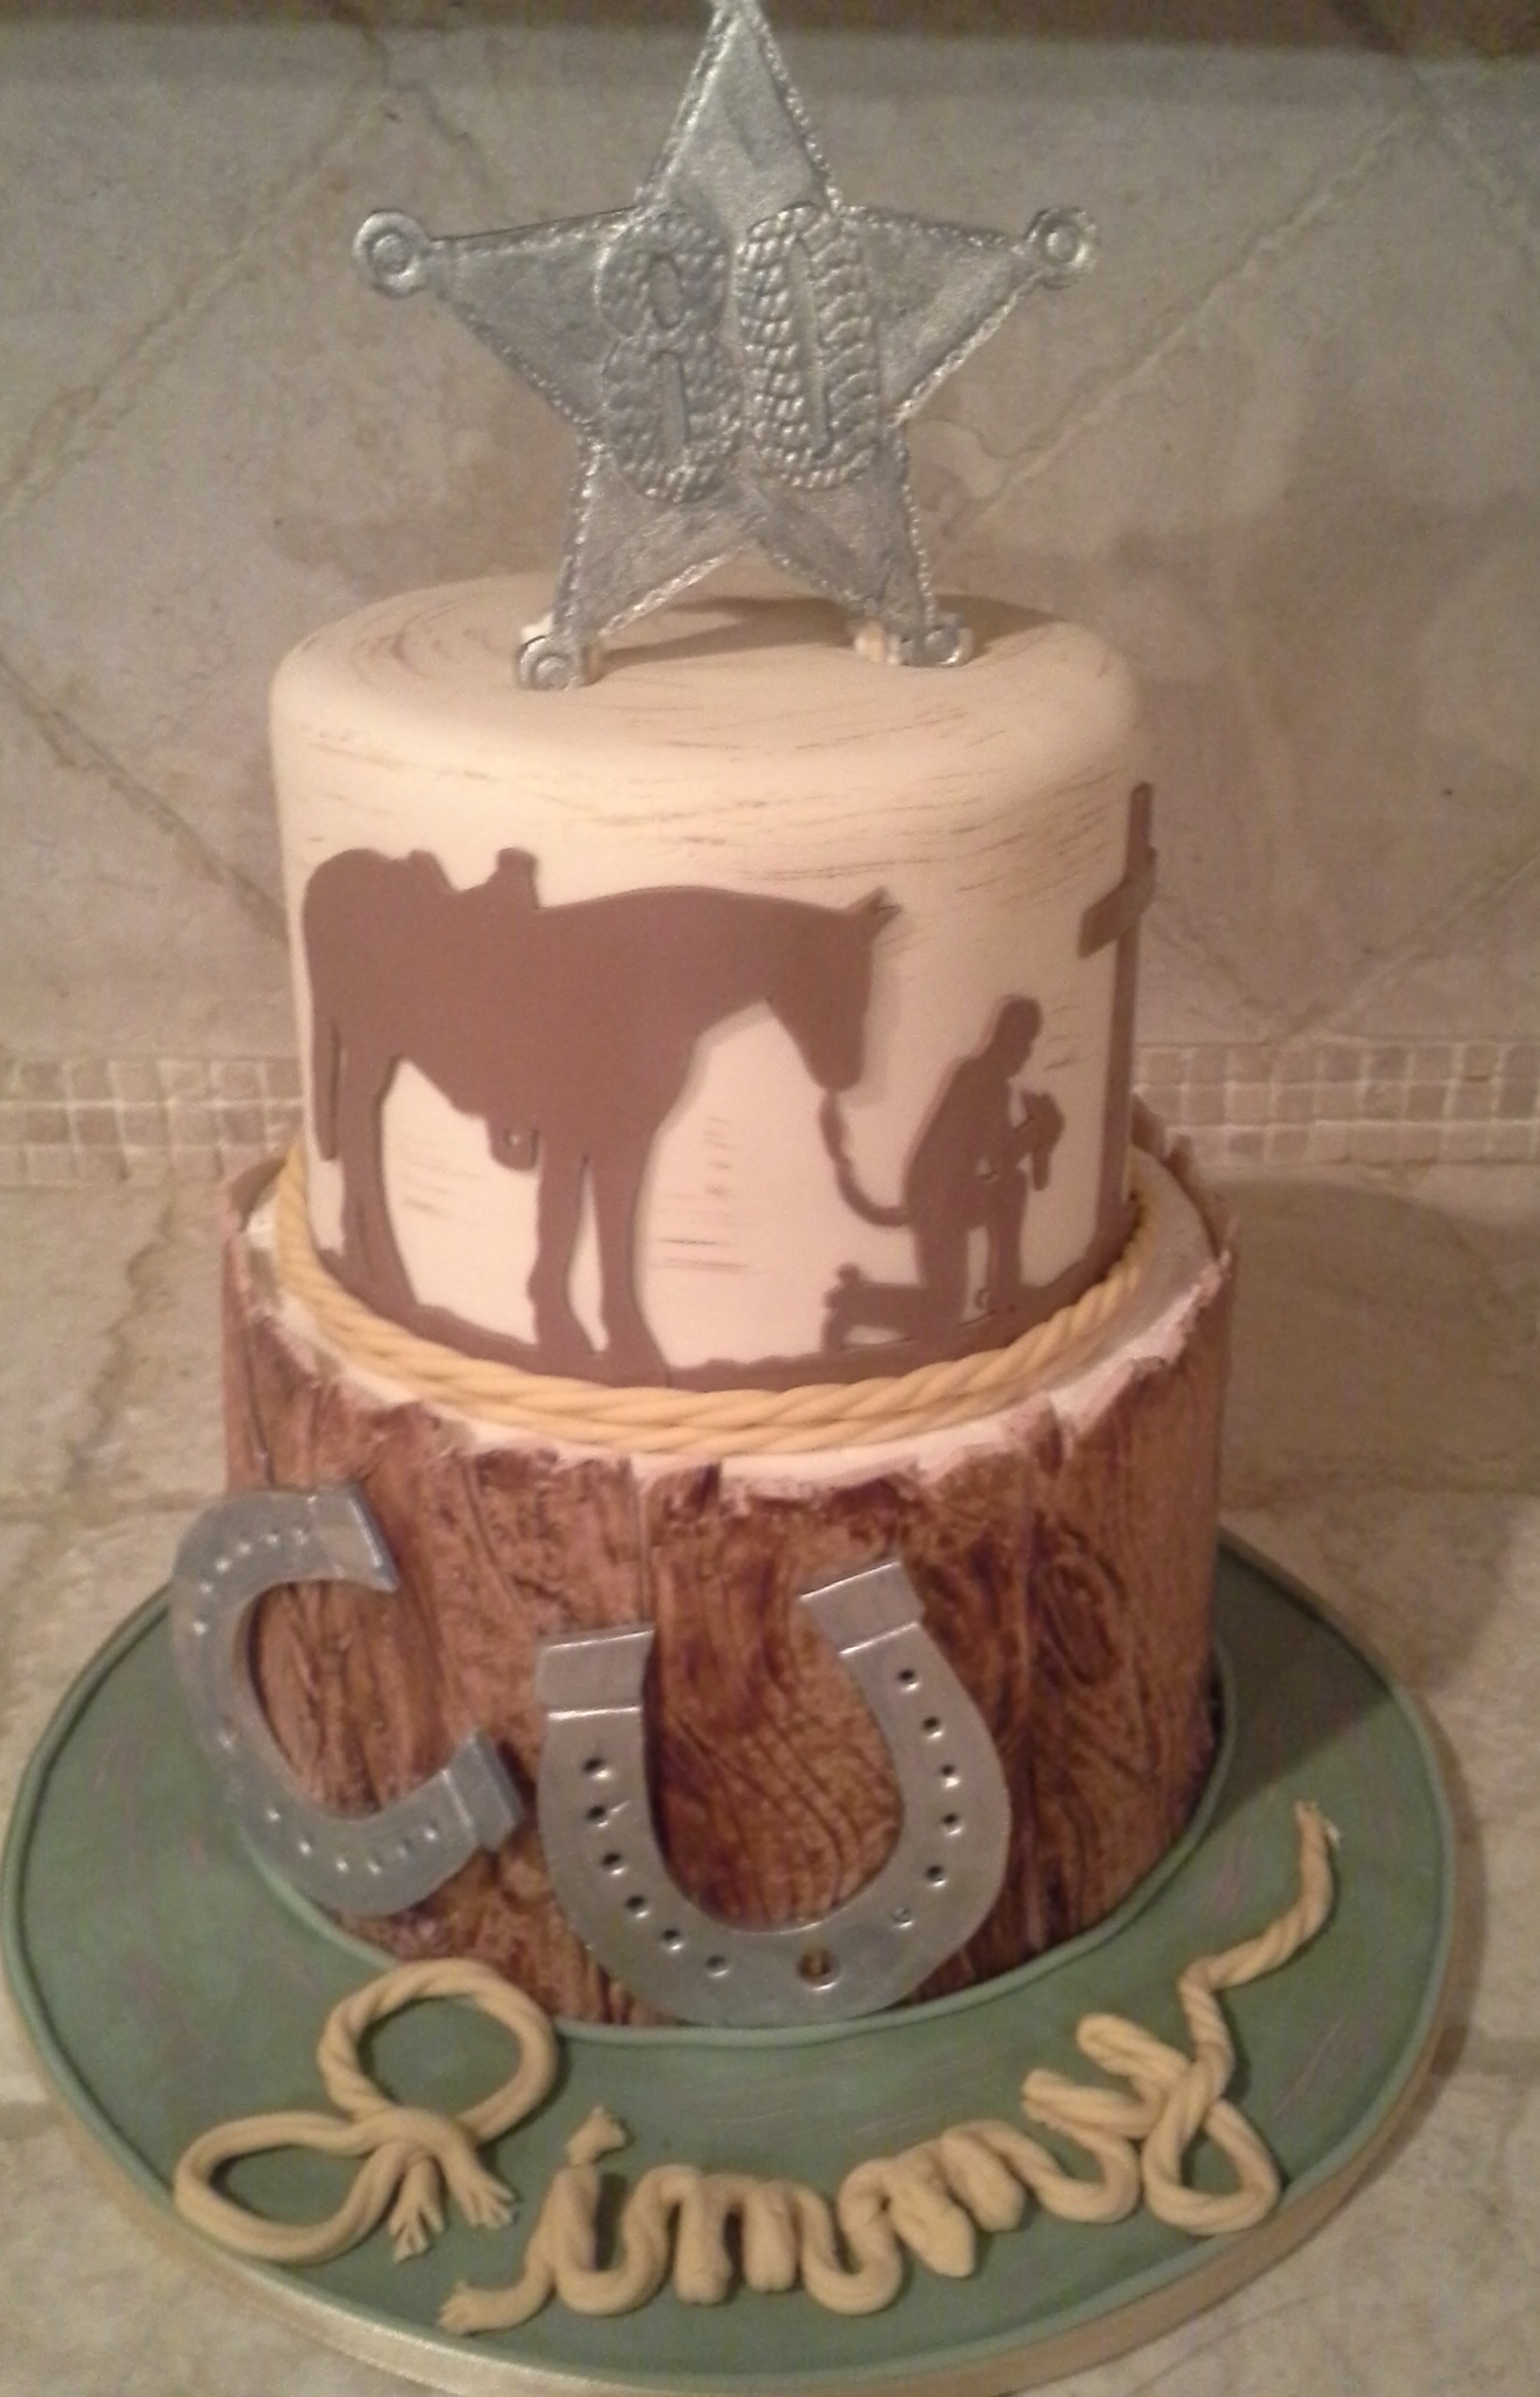 Cakes By Vicki Custom Cakes Spring The Woodlands Texas